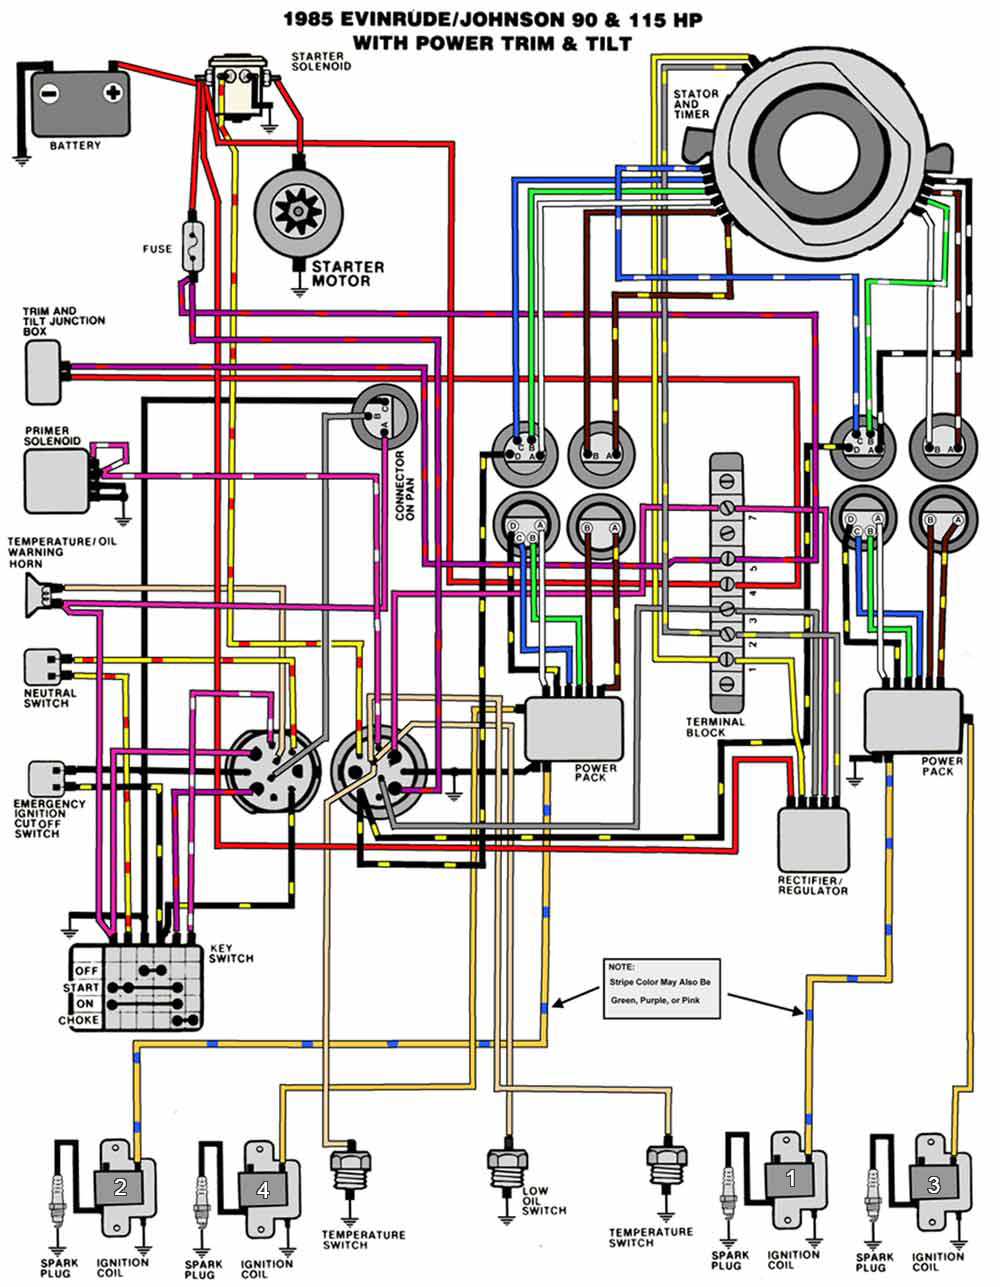 1985_90_115TnT mastertech marine evinrude johnson outboard wiring diagrams  at gsmx.co